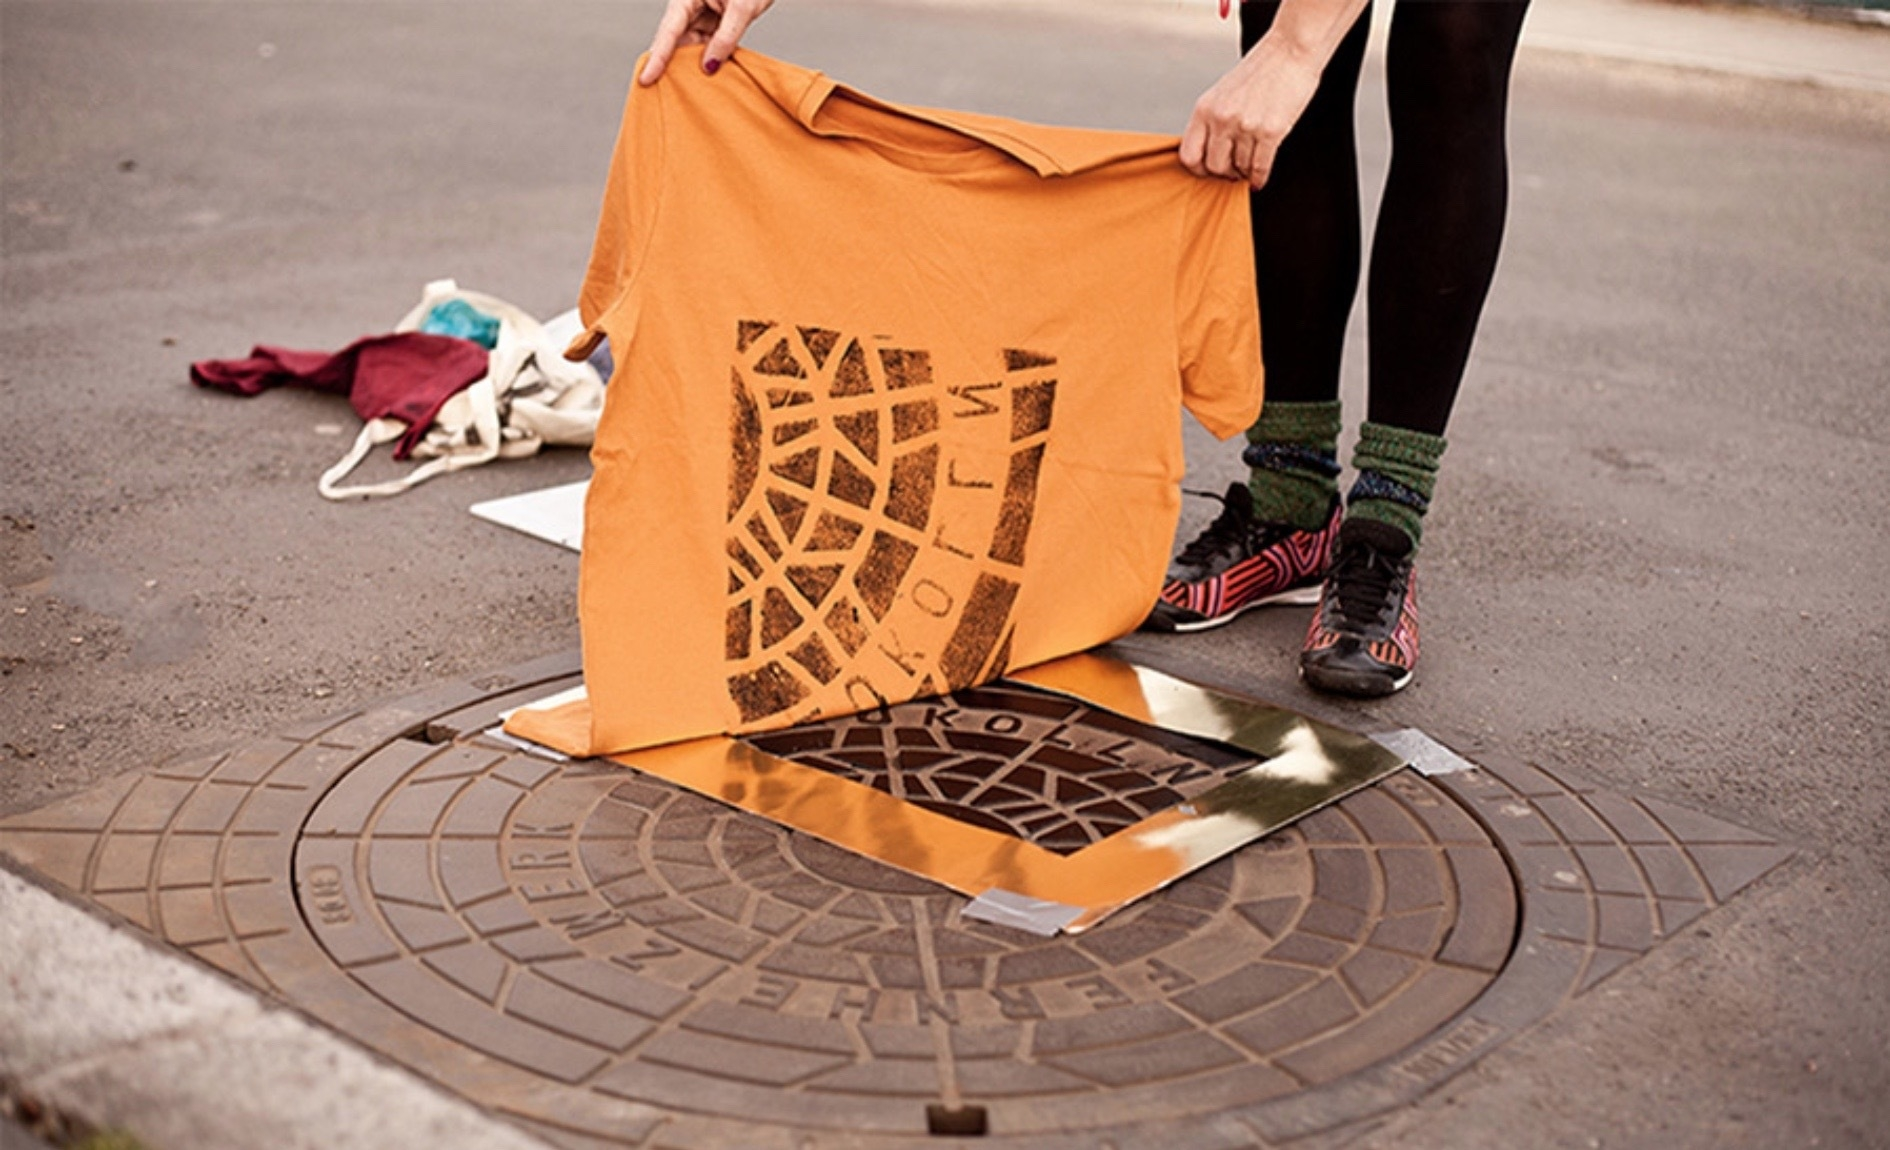 T-shirts printed on manholes